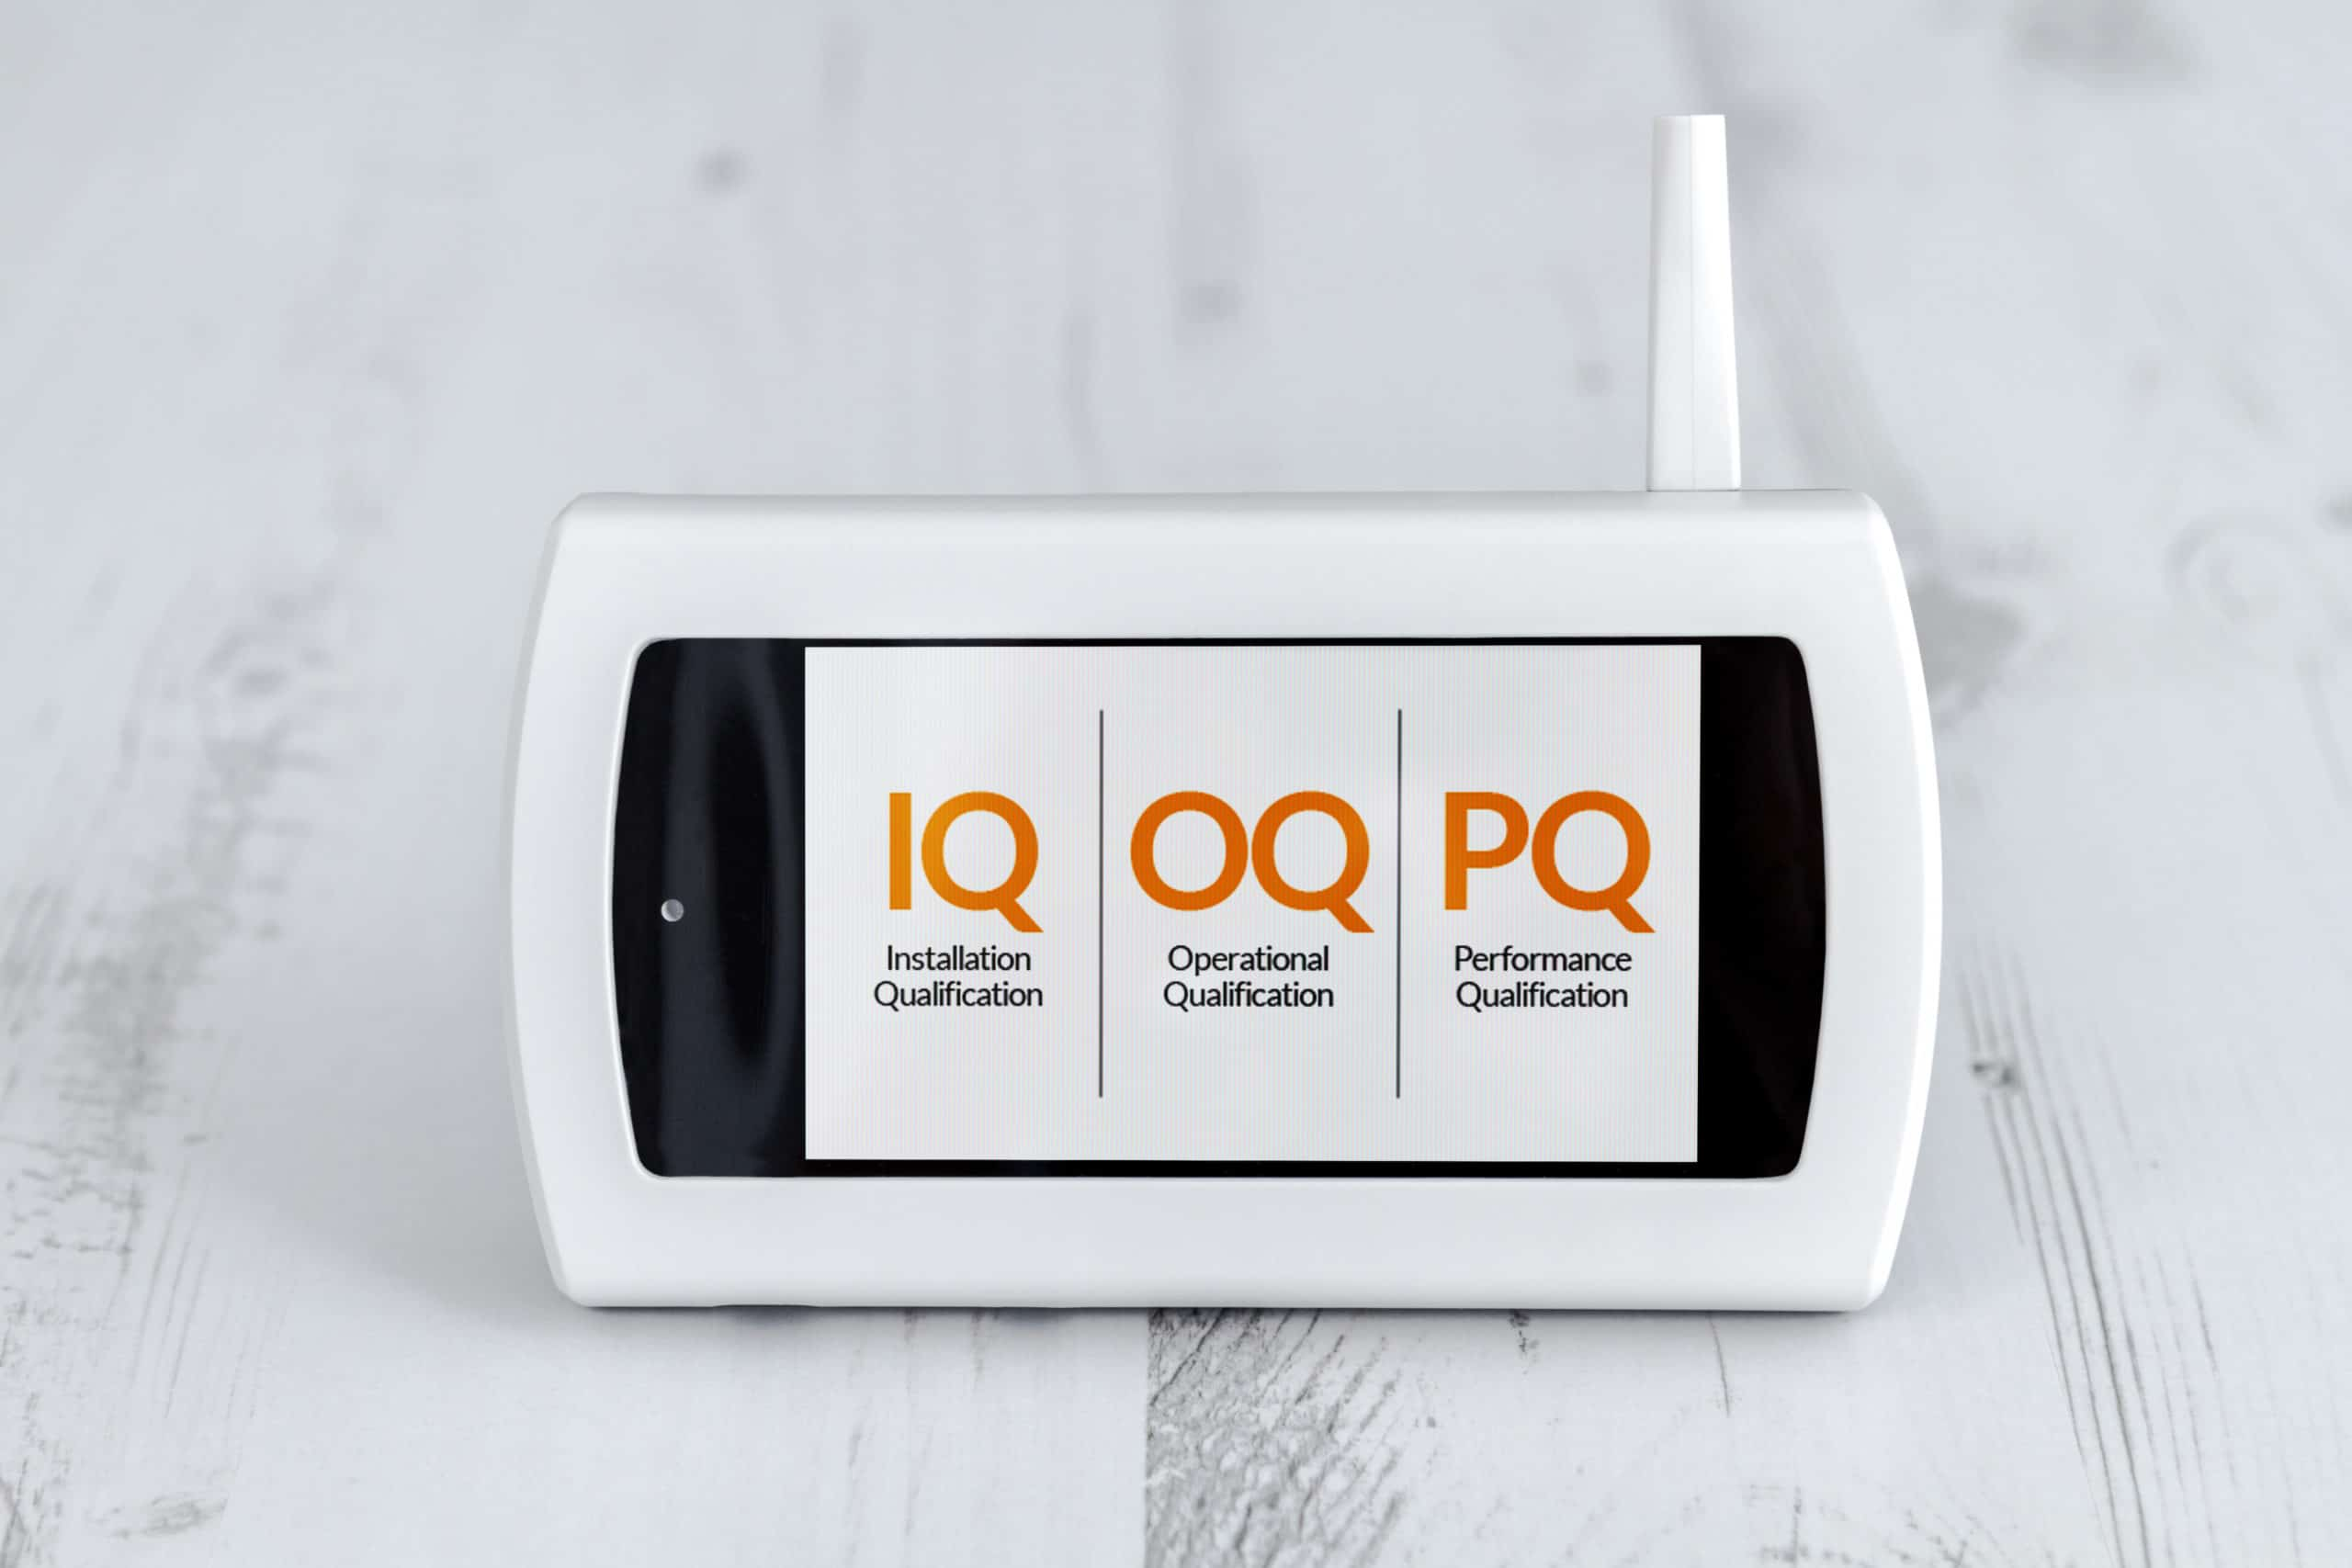 IQ OQ PQ system validation